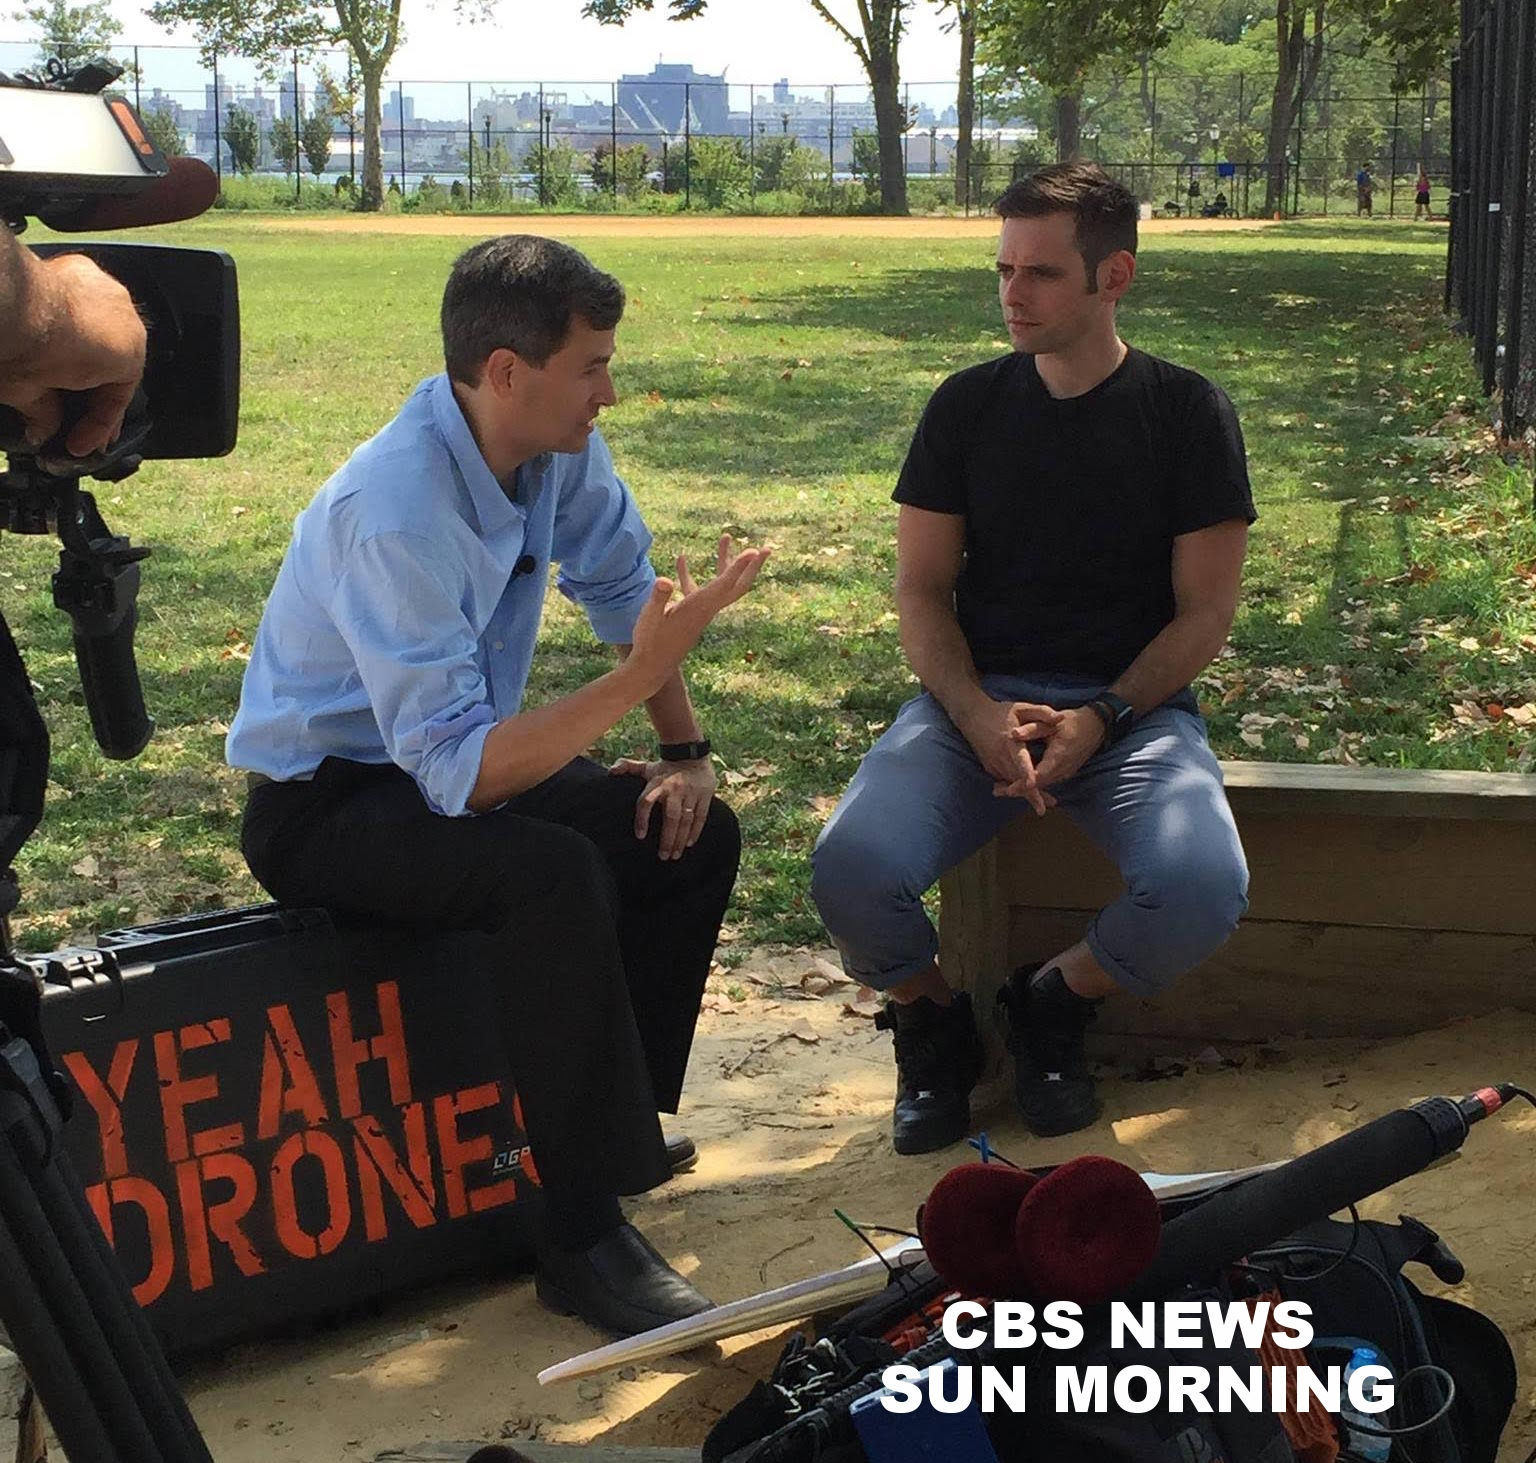 We got to talk drones with David Pogue...